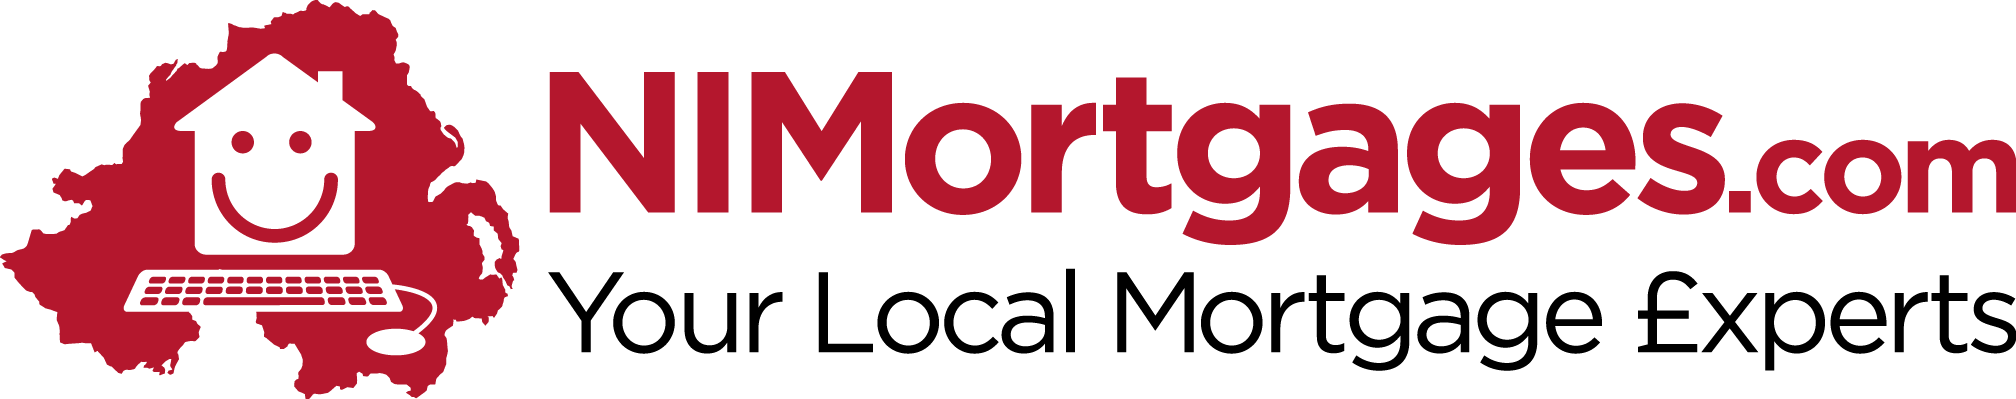 NIMortgages